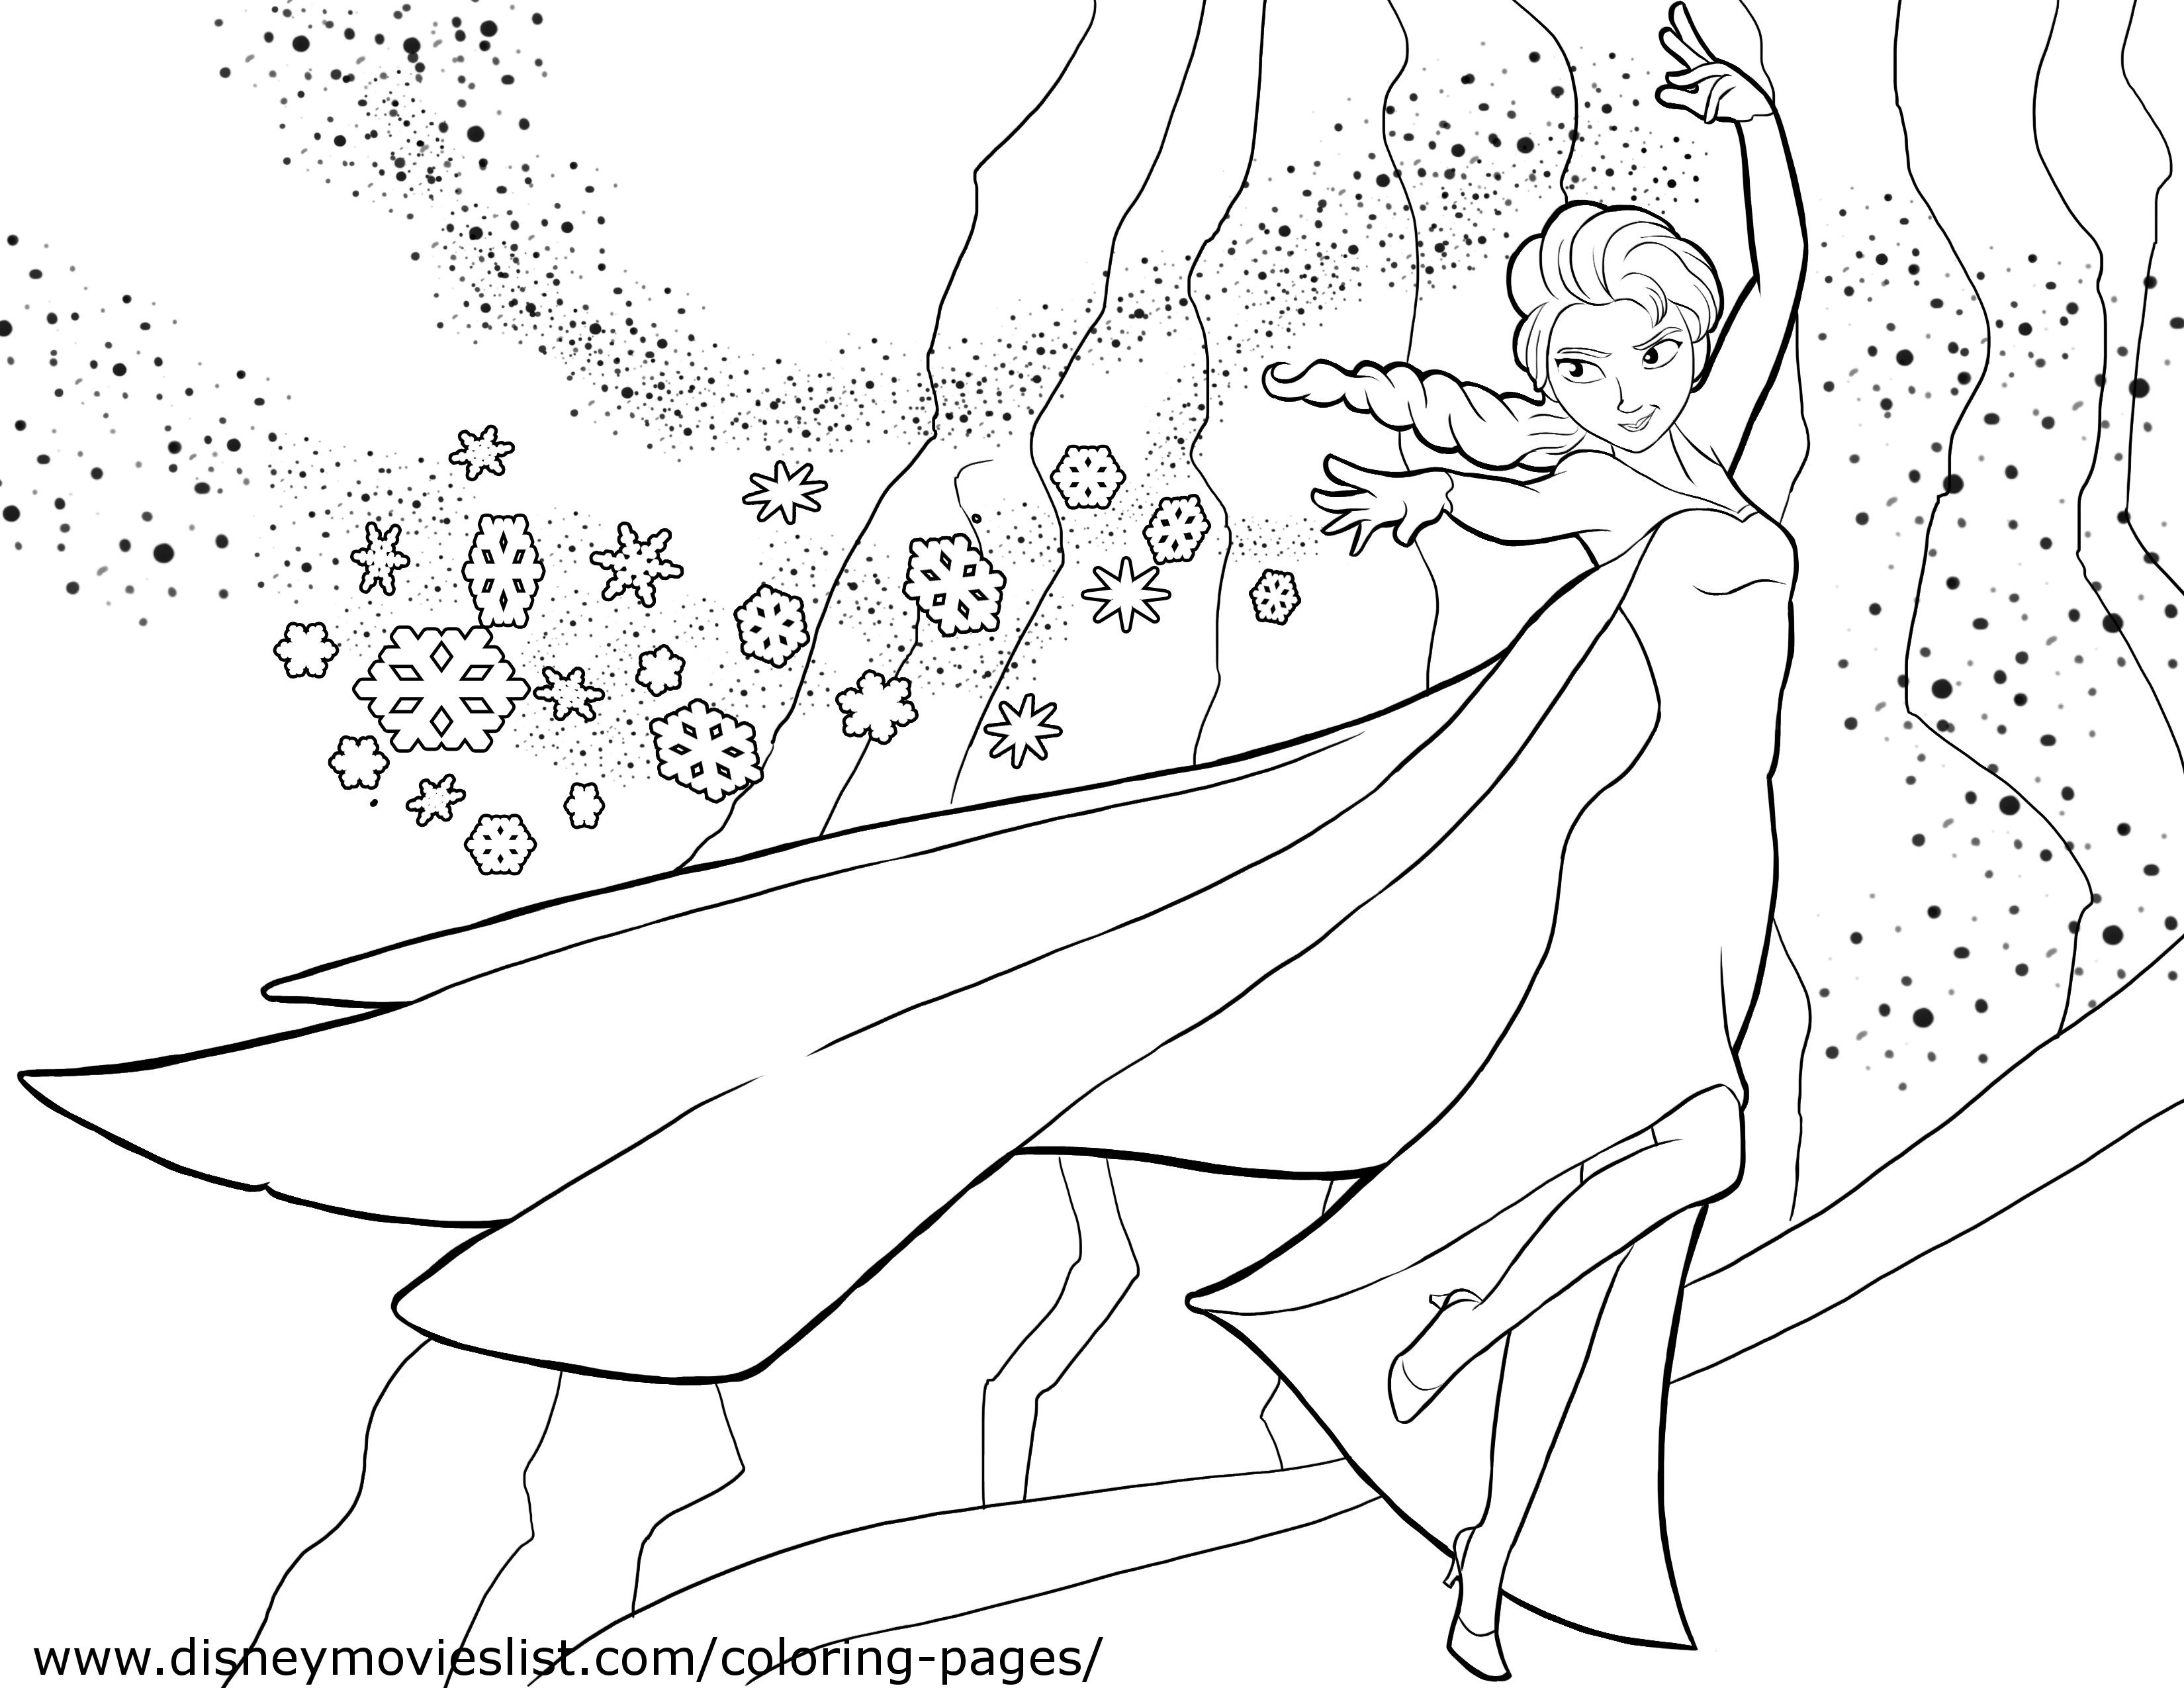 Free Coloring Pages Disney Frozen  disney frozen coloring pages Free